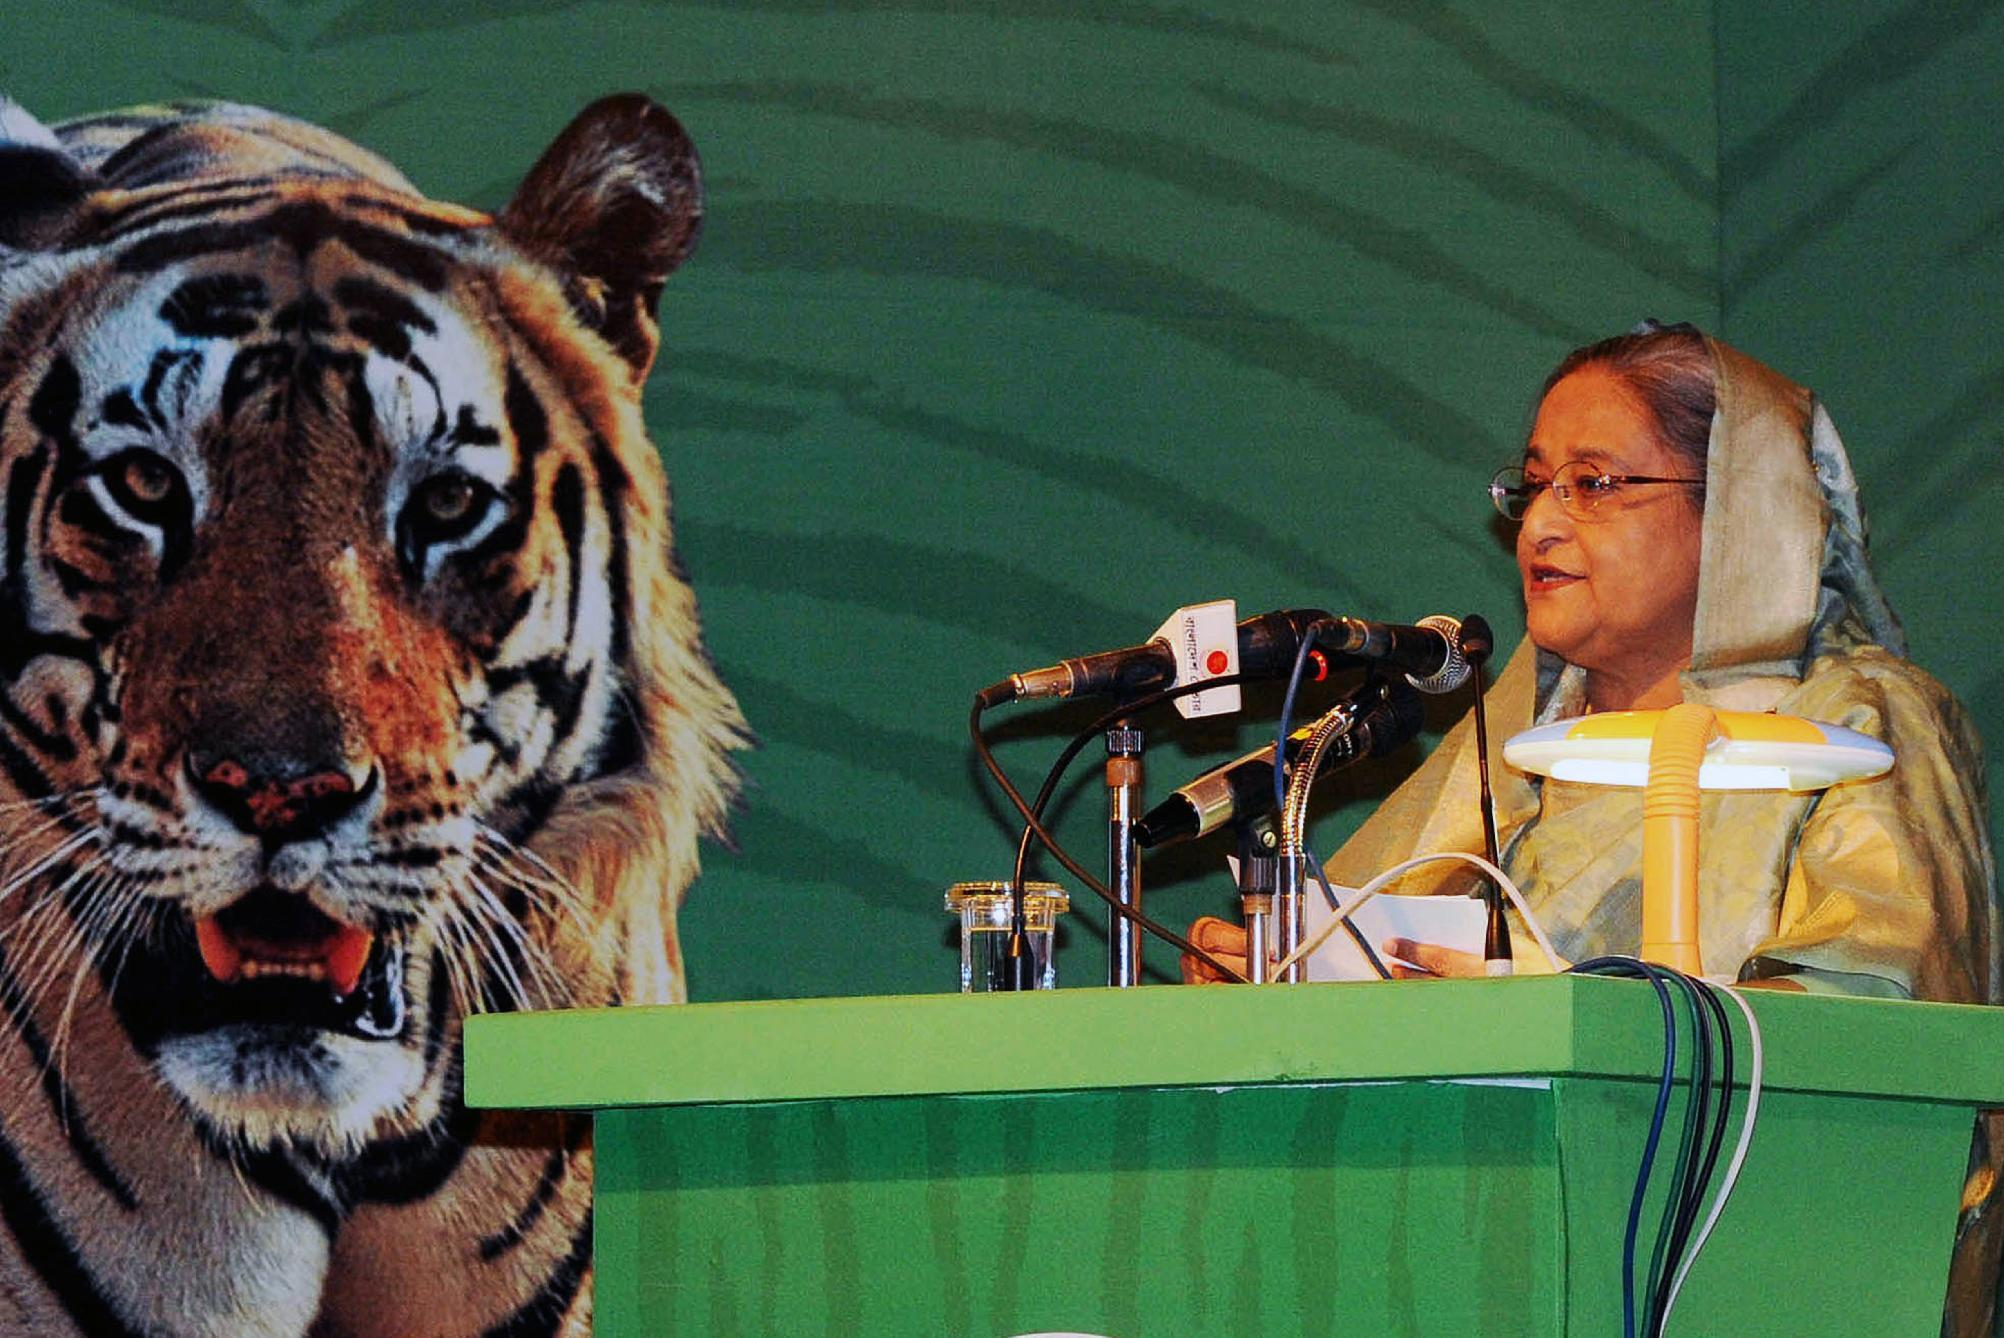 Bangladesh Prime Minister Sheikh Hasina addresses the Global Tiger Recovery Programme (GTRP) in Dhaka, on September 14, 2014 (AFP Photo/)